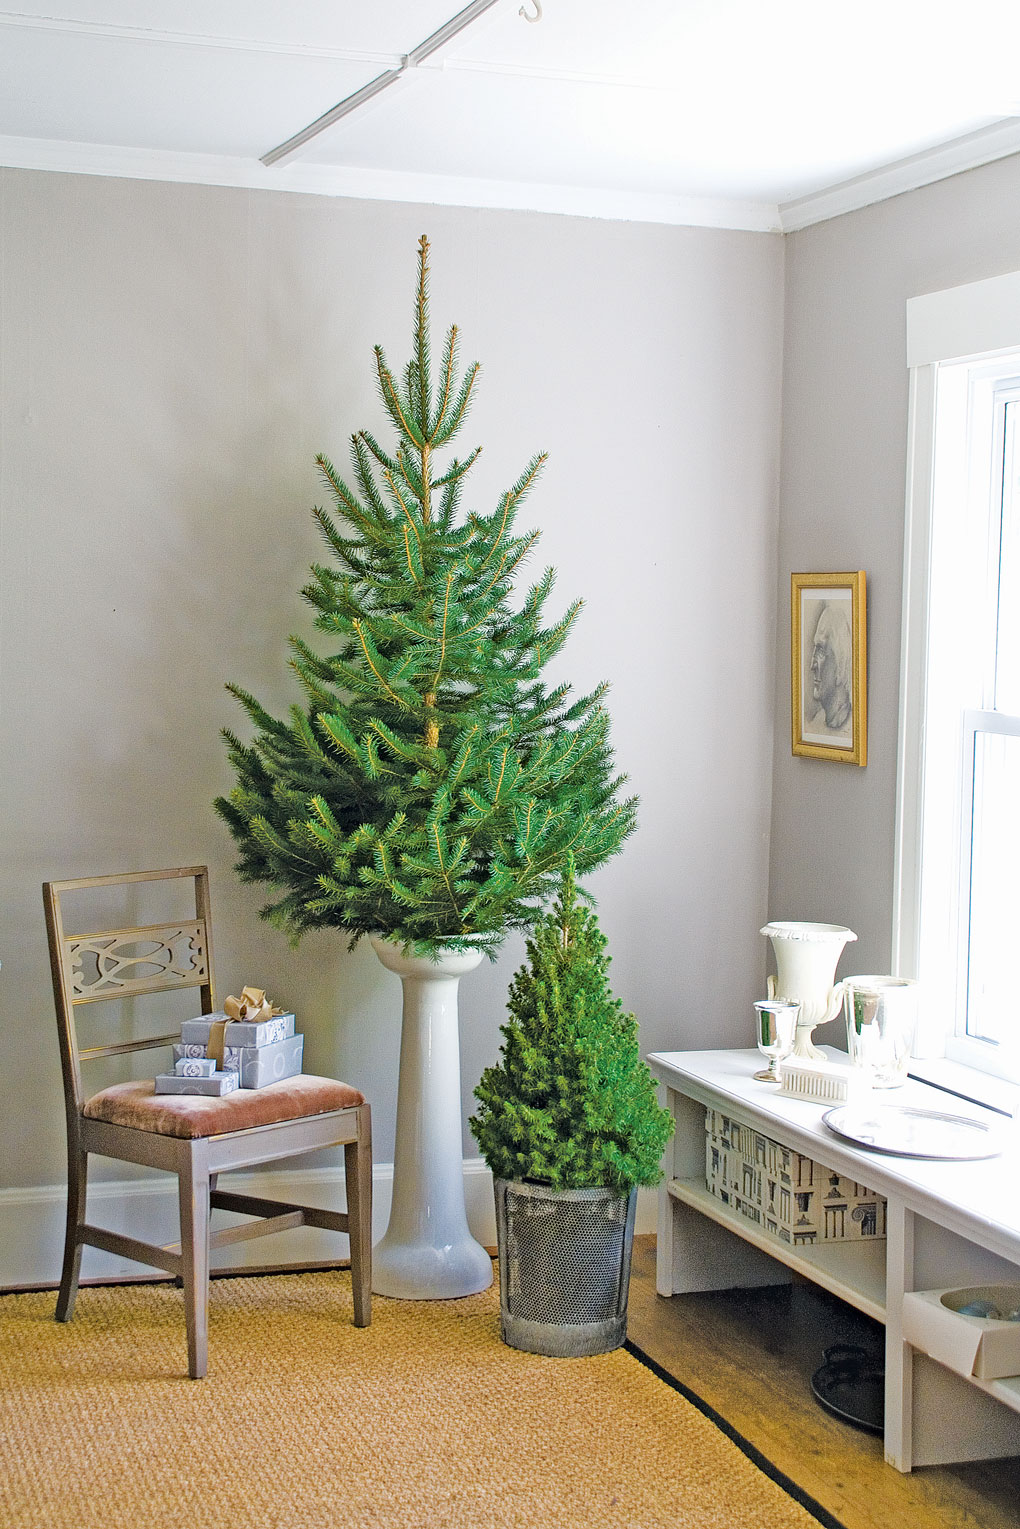 Corner of a room with light gray walls and white trim displaying bare Christmas trees as a pop of bright green decor.